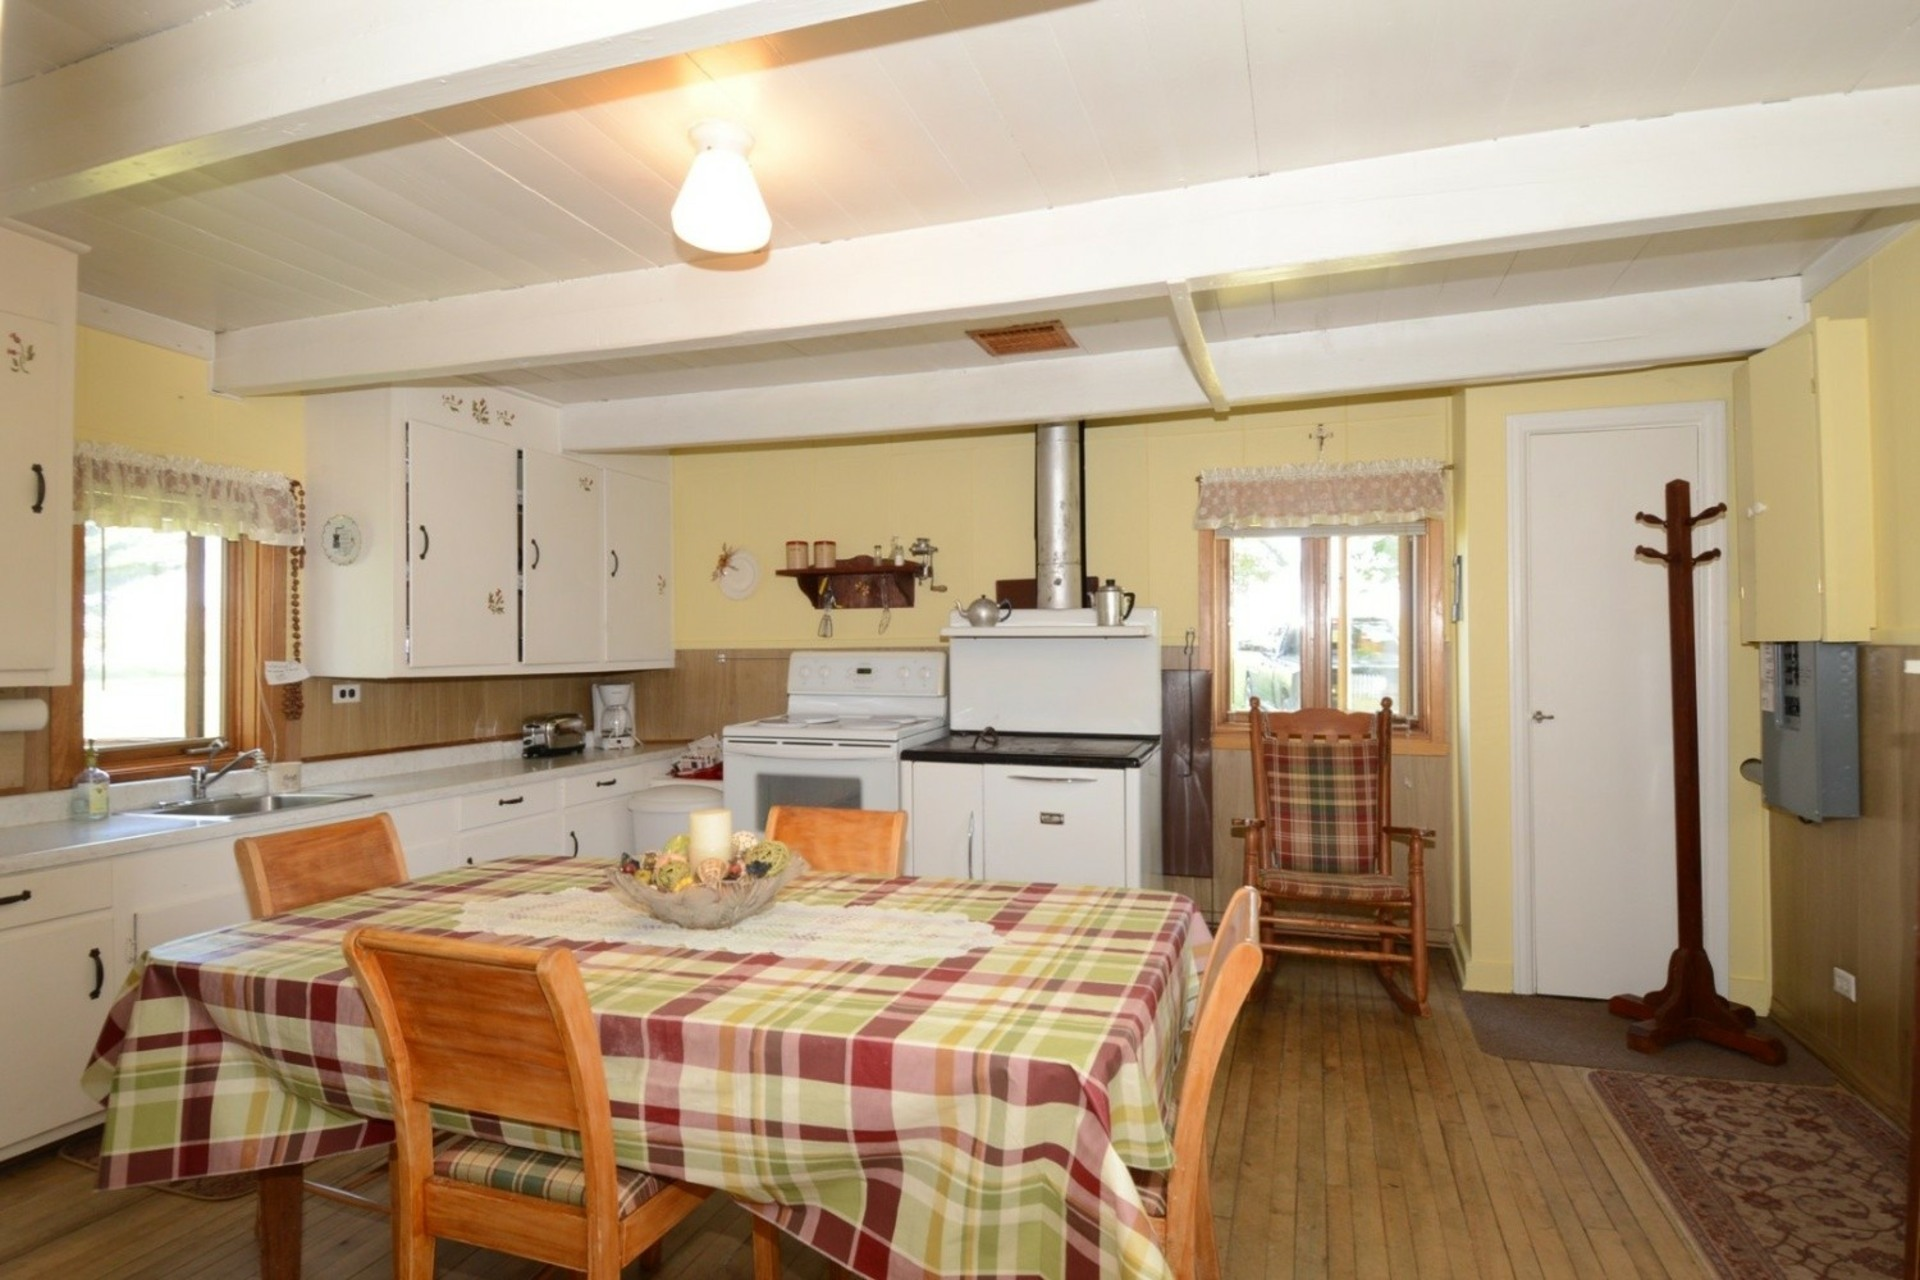 image 5 - Farmhouse For sale Rigaud - 8 rooms